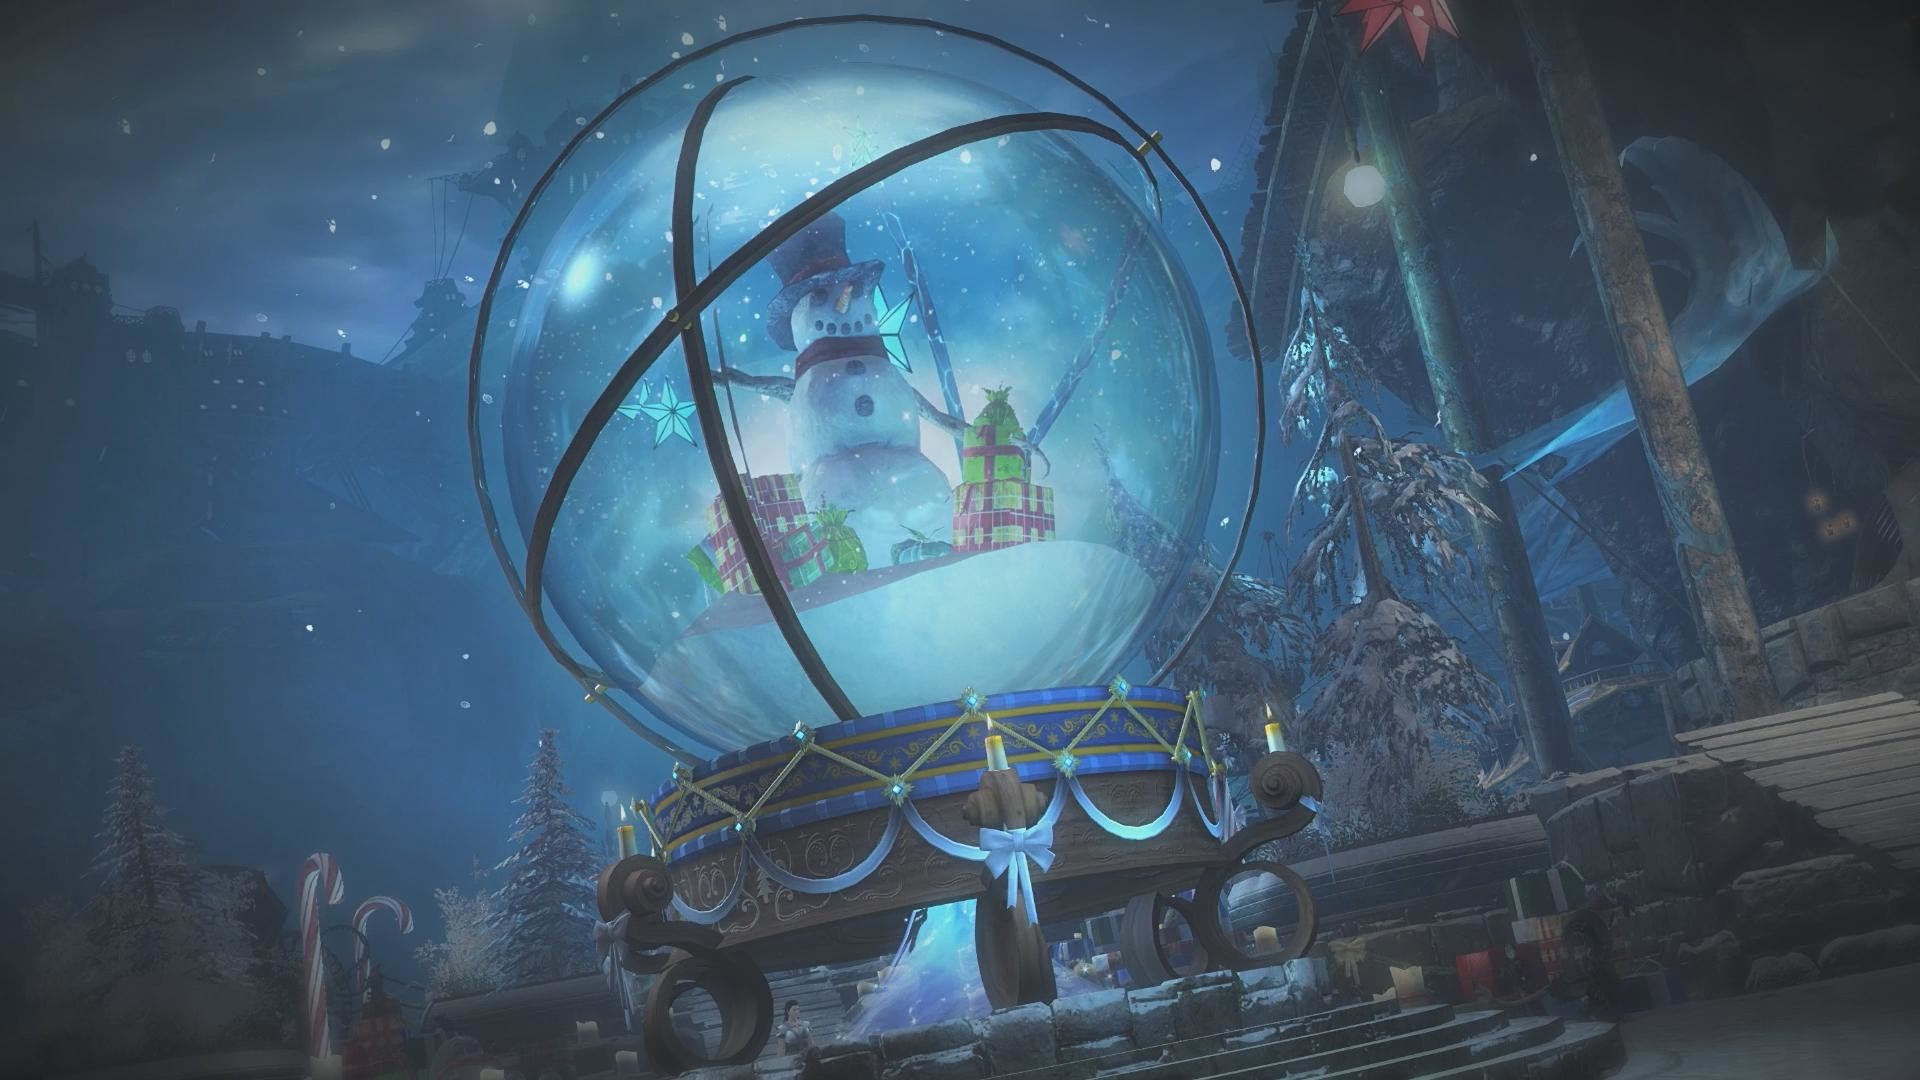 Snow Globe Wallpaper 66 Images